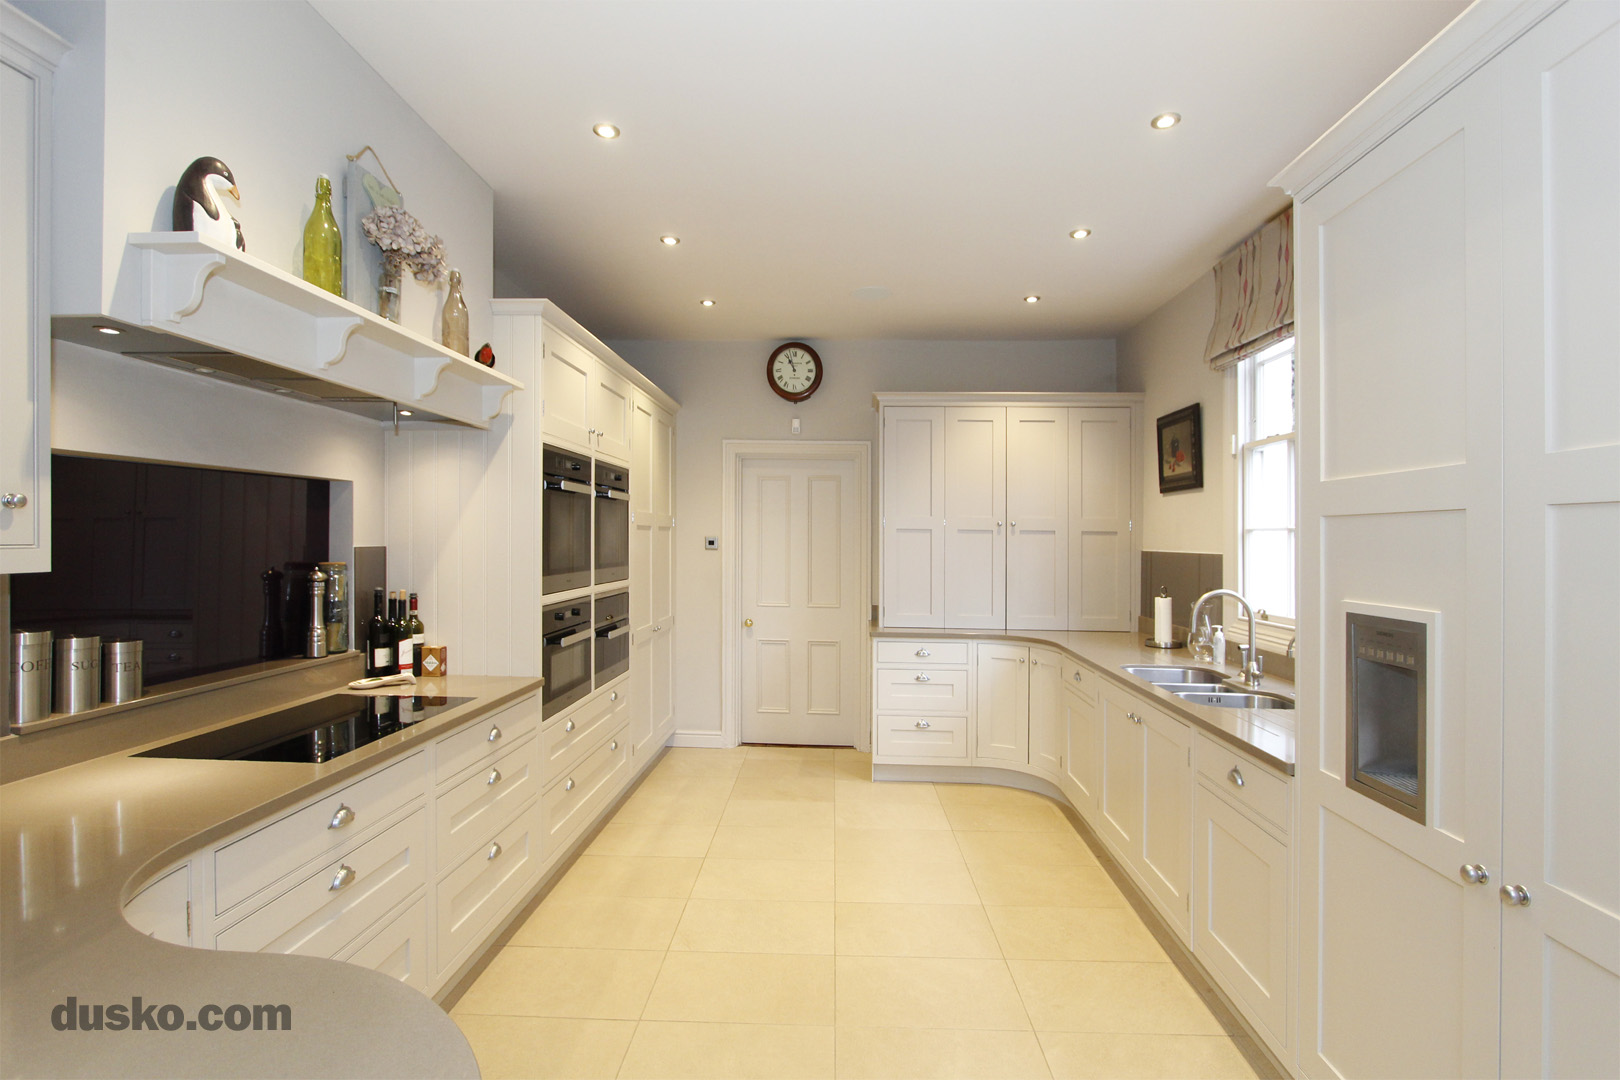 Dusko In Frame Kitchen in Bowdon, Cheshire